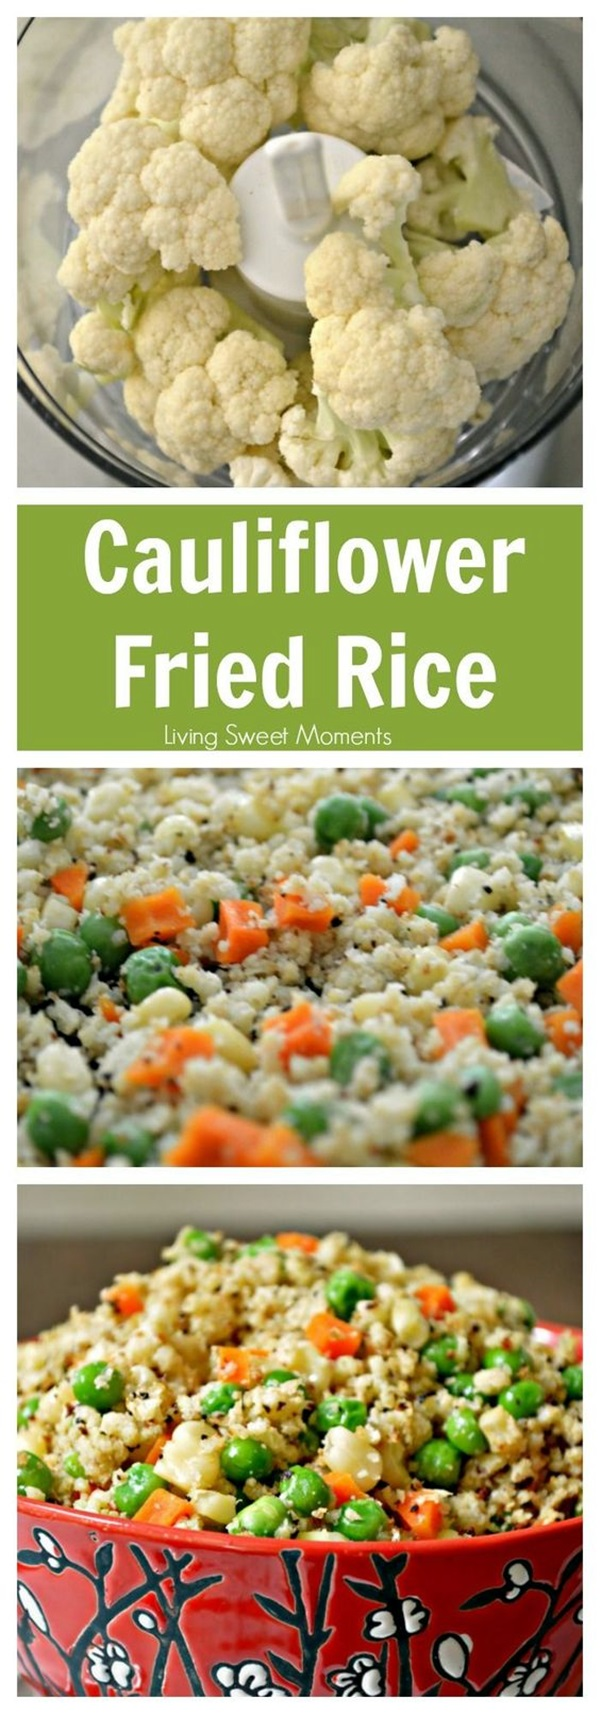 Ways To Use Cauliflower As A Low-Carb Replacement (12)